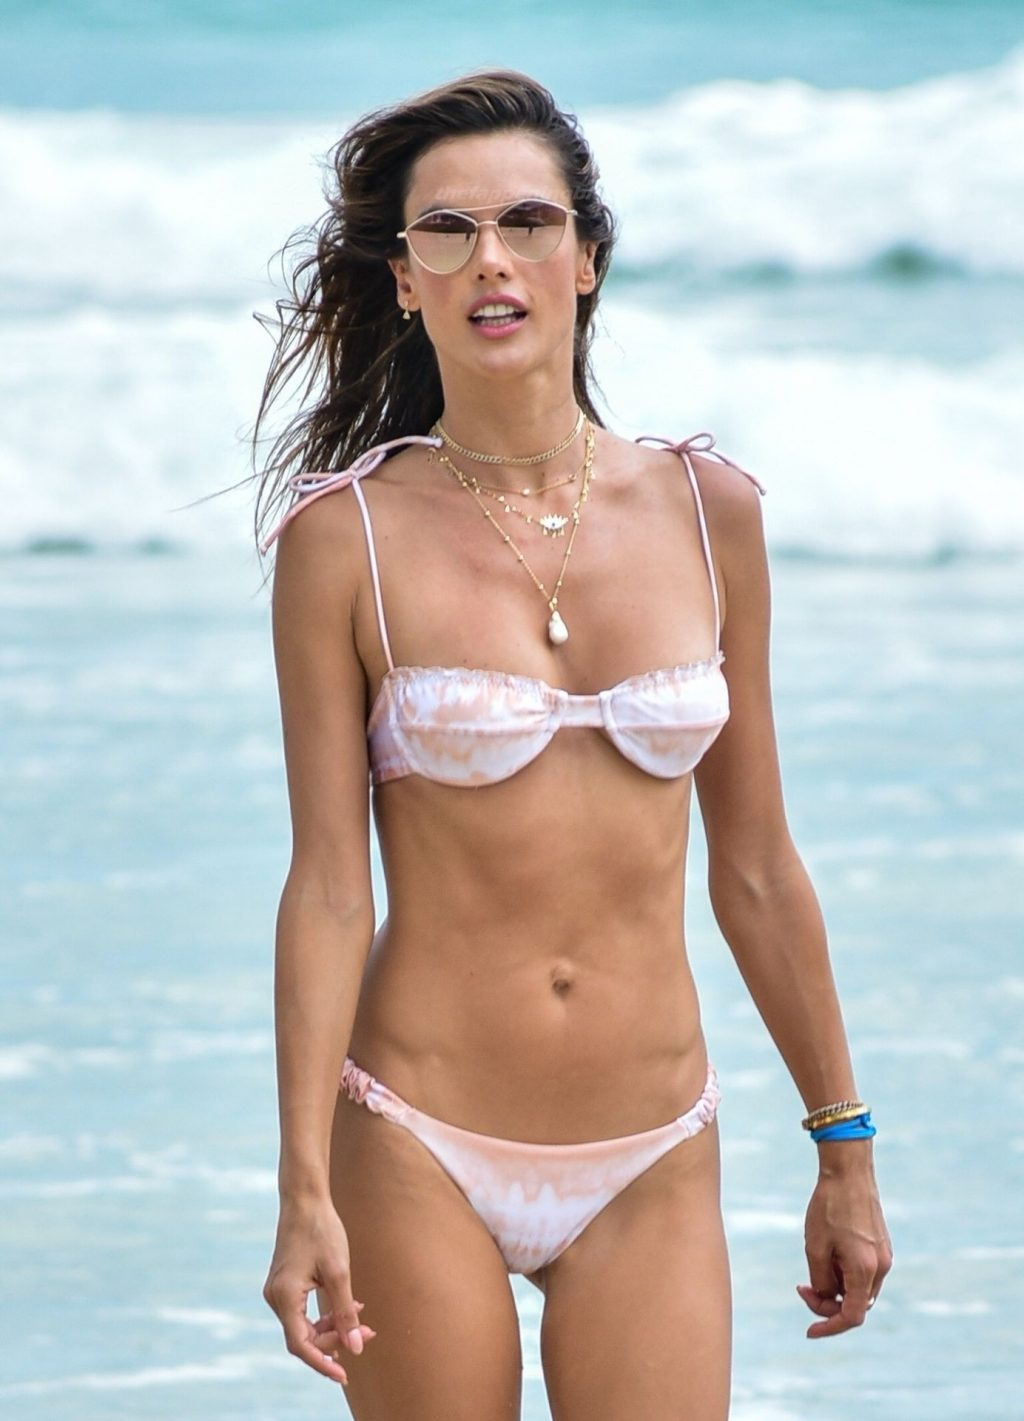 Alessandra Ambrosio Takes Advantage of a Sunny Day to Show Off Her Sexy Body (48 Photos)